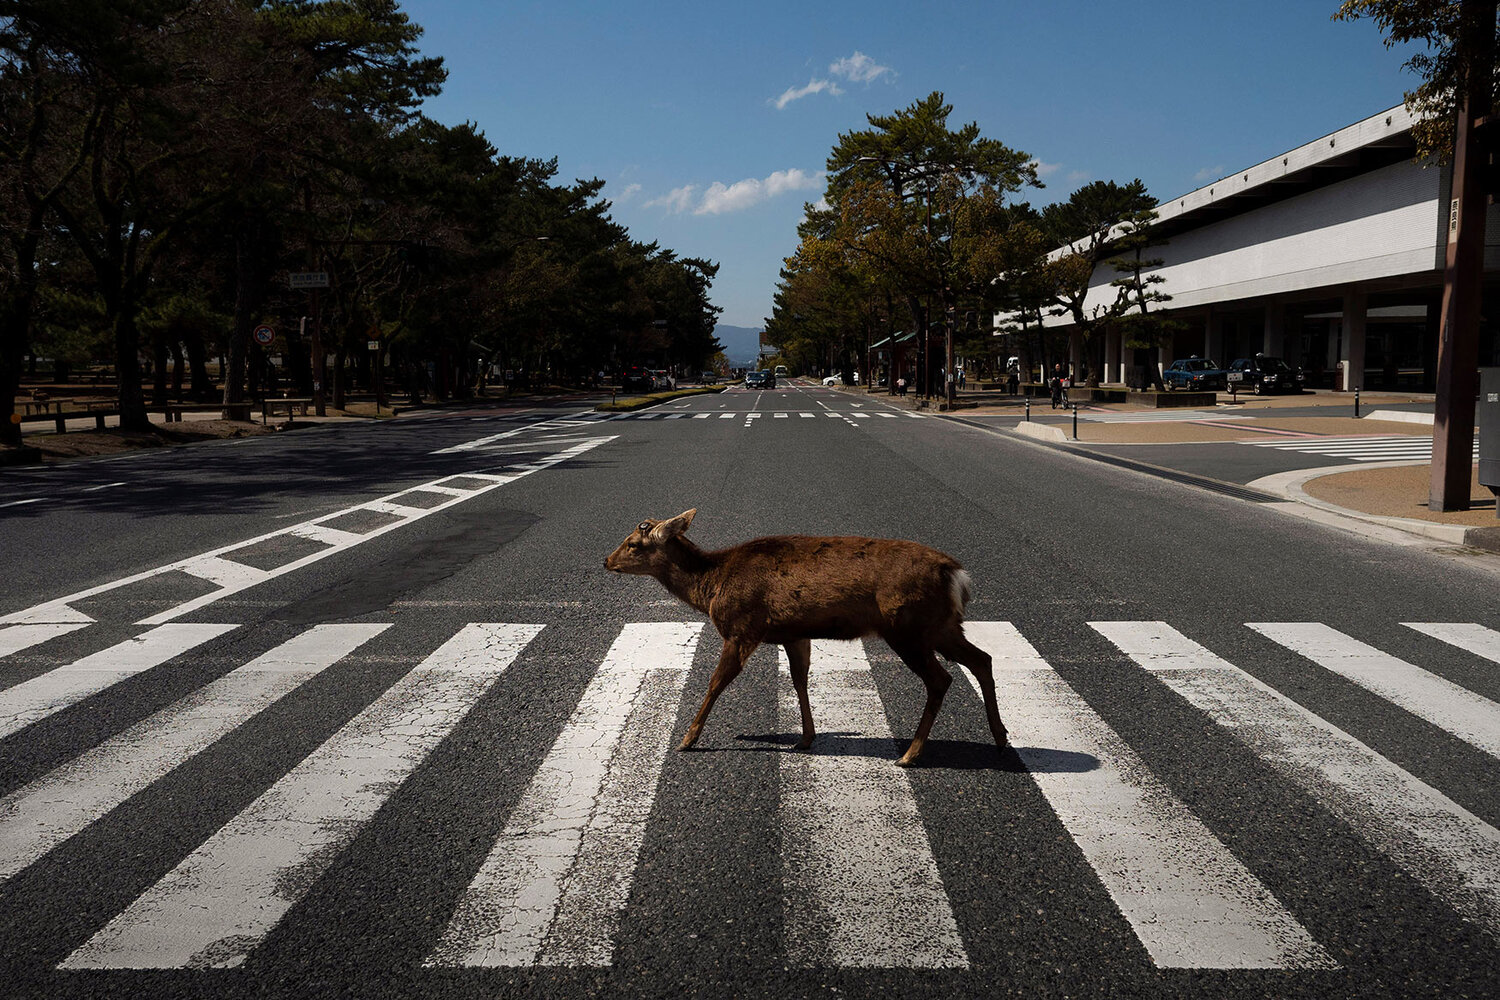 Oh, deer! Treasured animals wander Nara streets